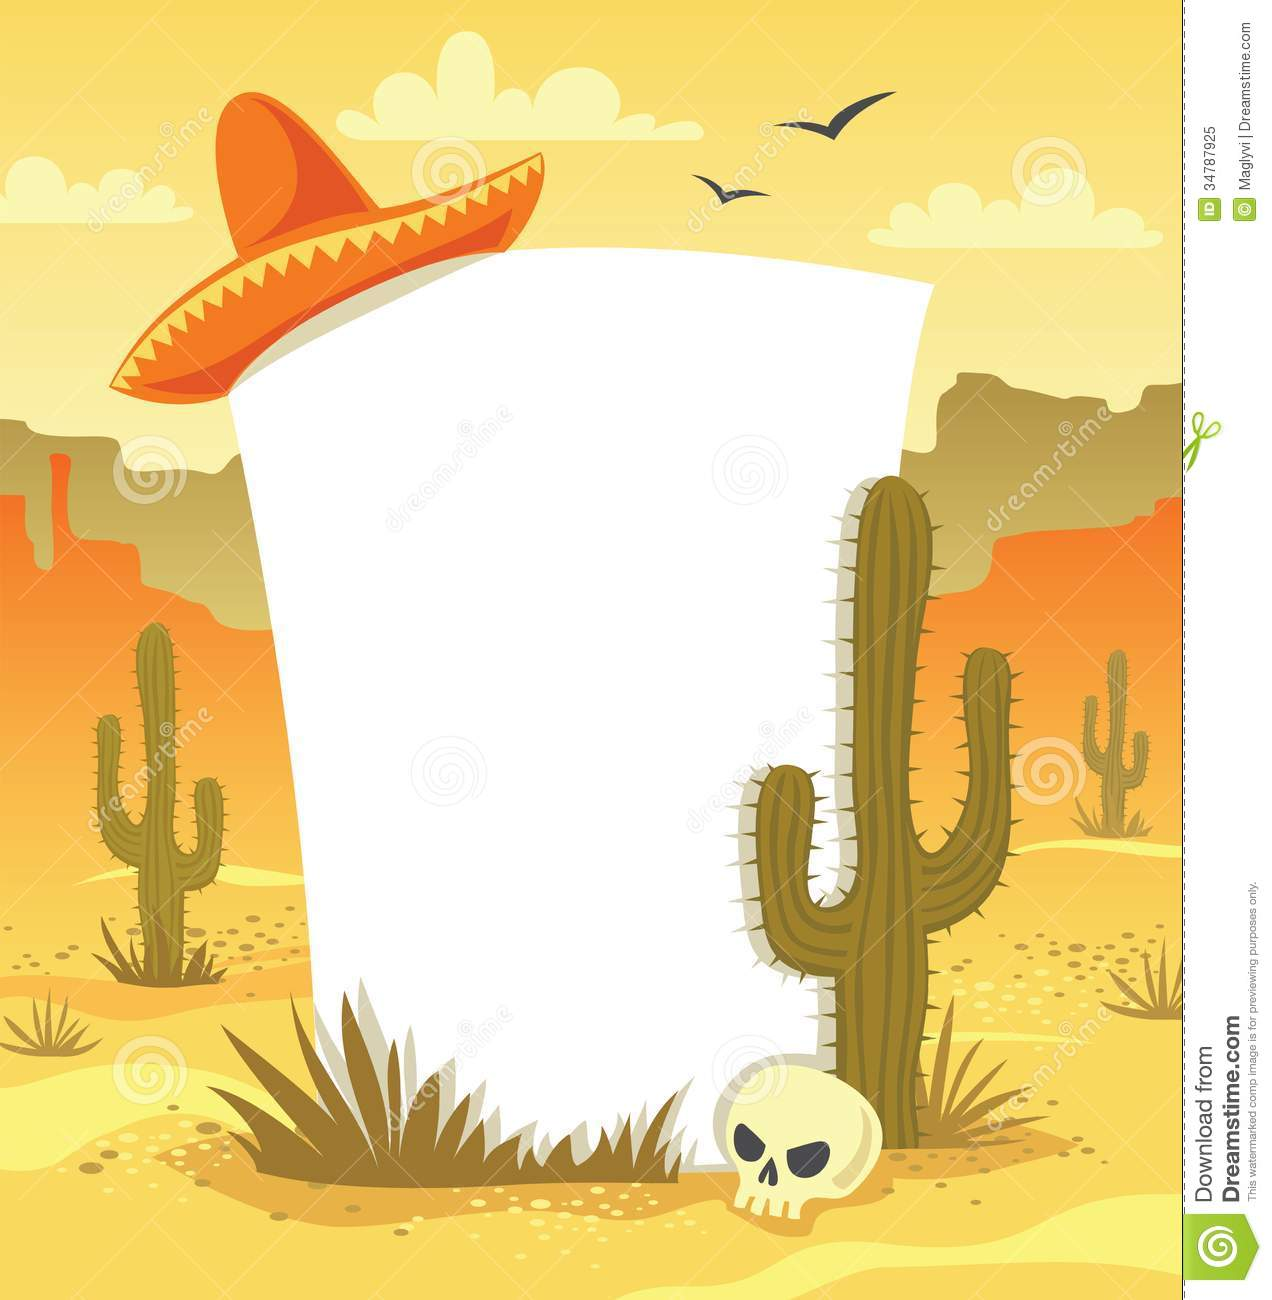 Mexican Background Royalty Free Stock Photo Image 34787925